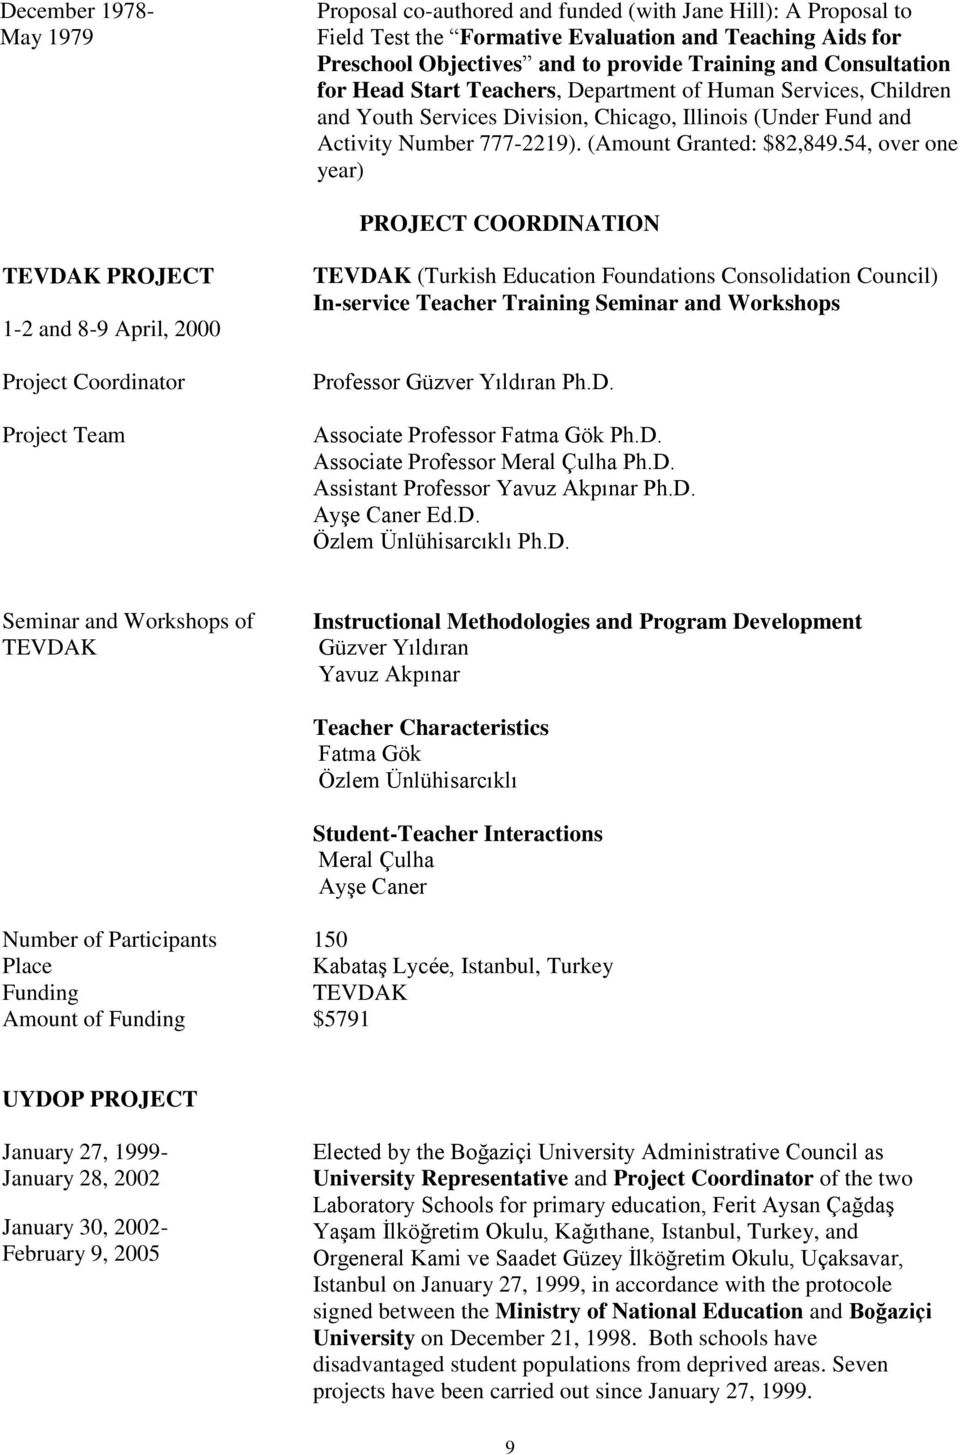 54, over one year) PROJECT COORDINATION TEVDAK PROJECT 1-2 and 8-9 April, 2000 Project Coordinator Project Team TEVDAK (Turkish Education Foundations Consolidation Council) In-service Teacher